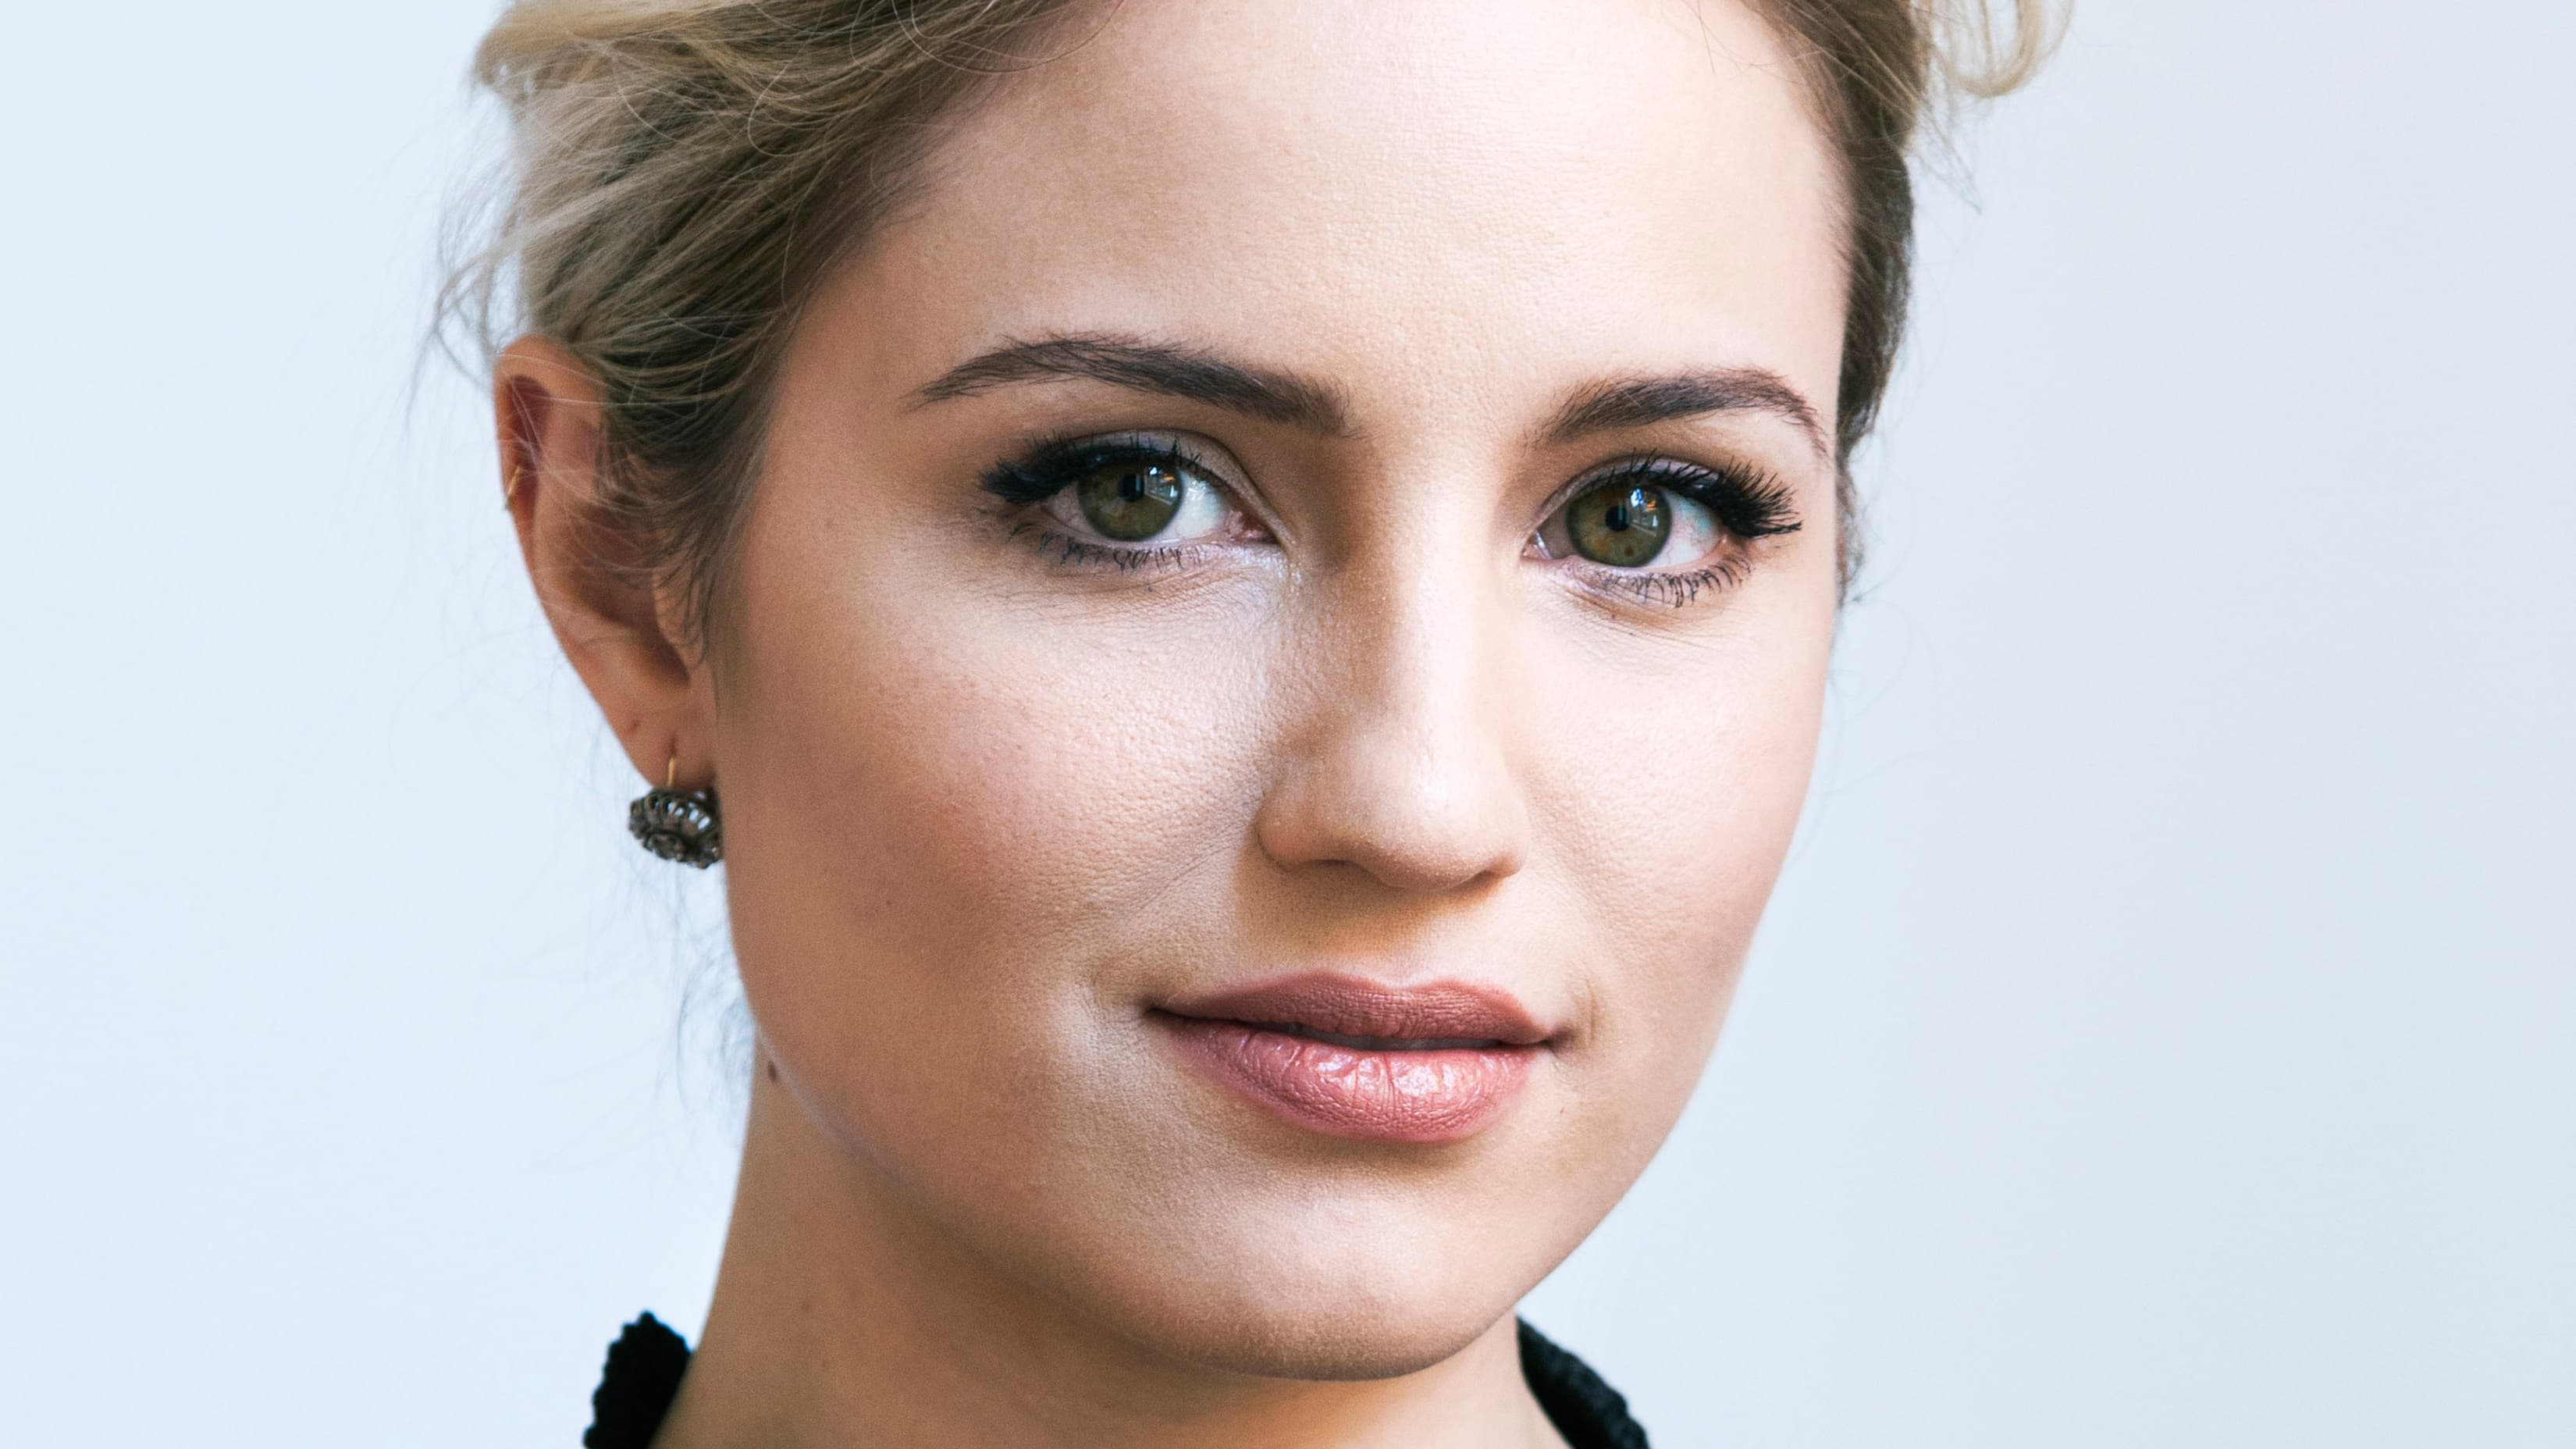 HD wallpaper of Dianna Agron Lips High Resolution